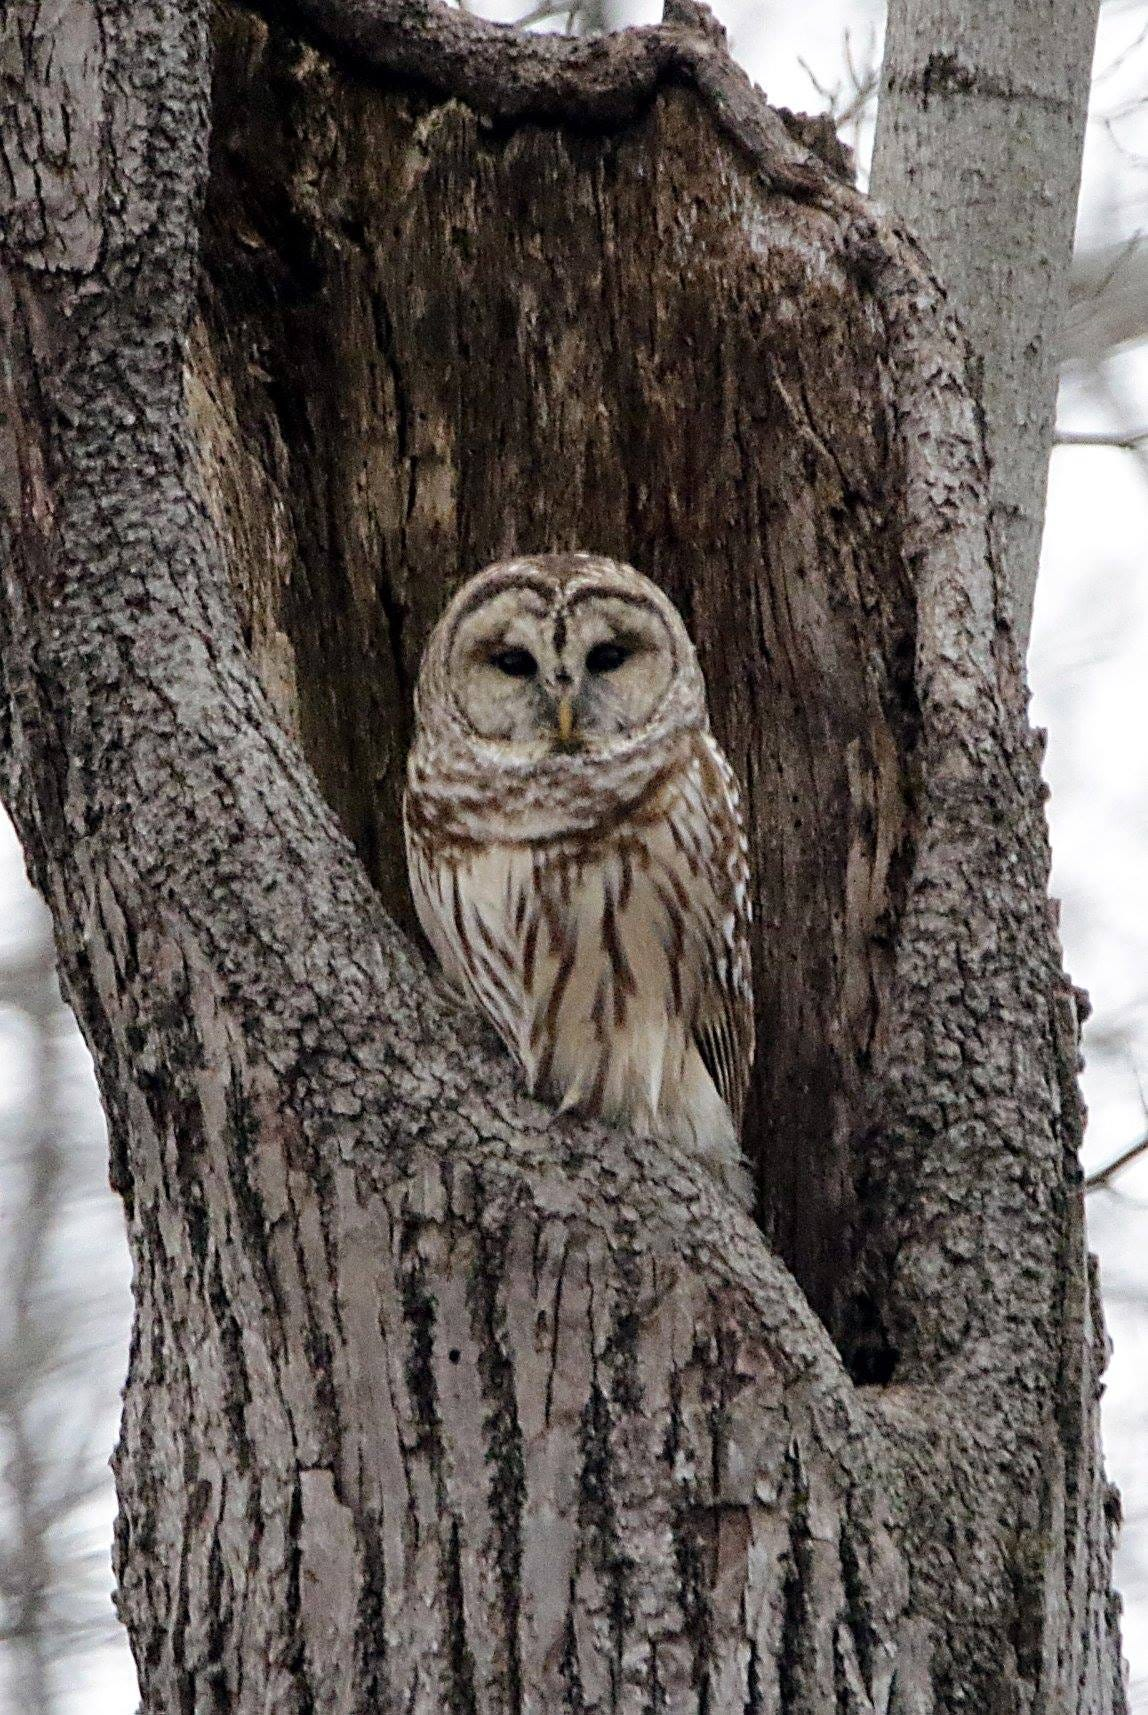 Jeff Vogelpohl captured this photo of a rare barred owl in the north woods at Ottawa National Wildlife Refuge on Sunday.